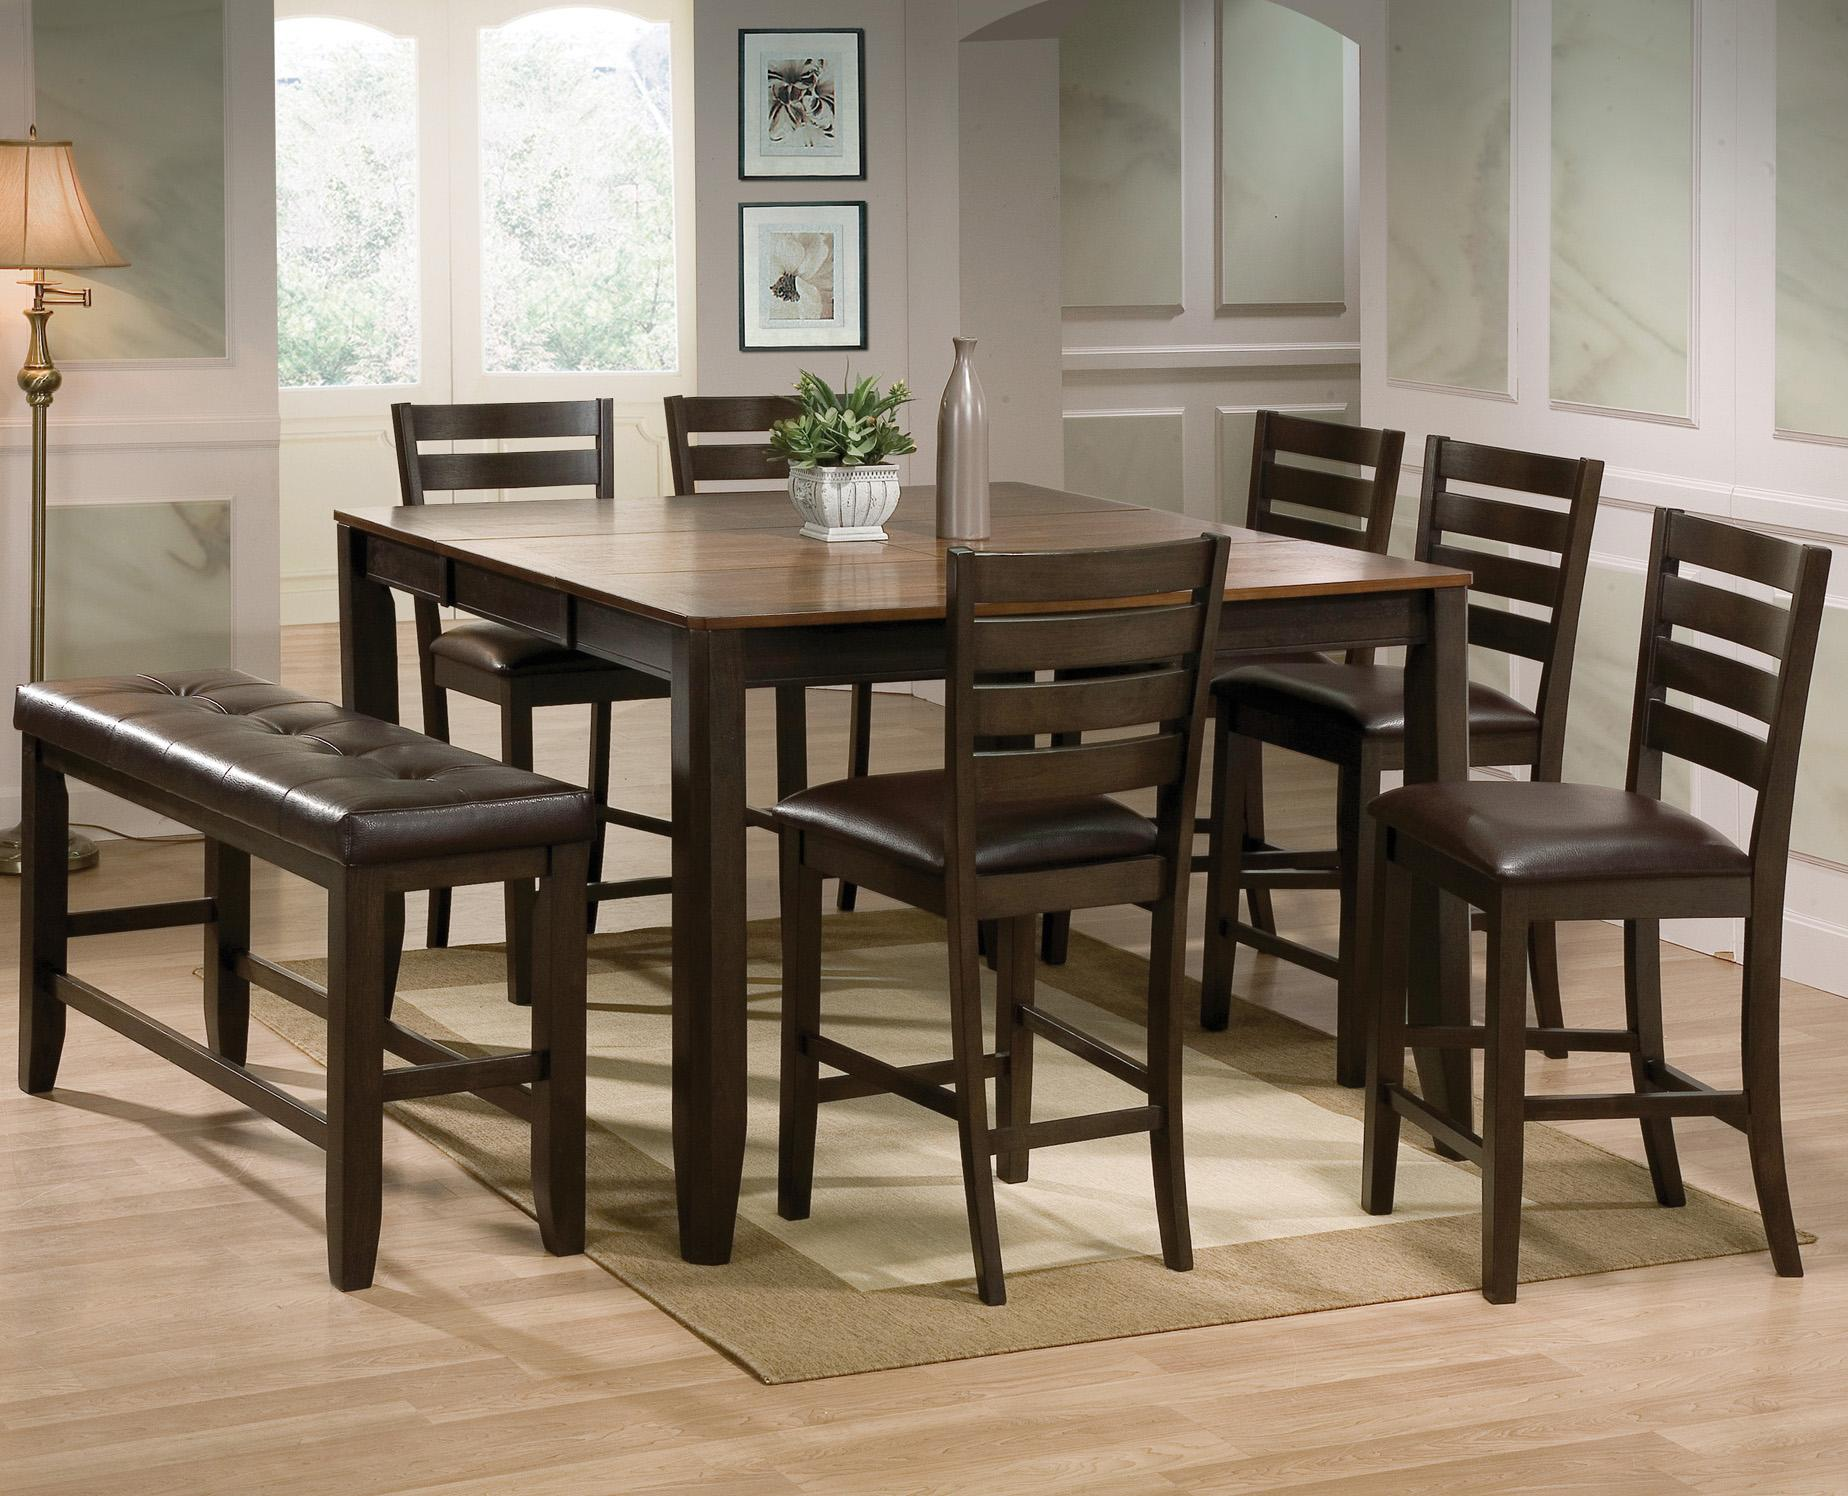 Crown Mark Elliott 8 Piece Counter Height Table And Chairs With Bench Set |  SuperStore | Pub Table And Stool Set